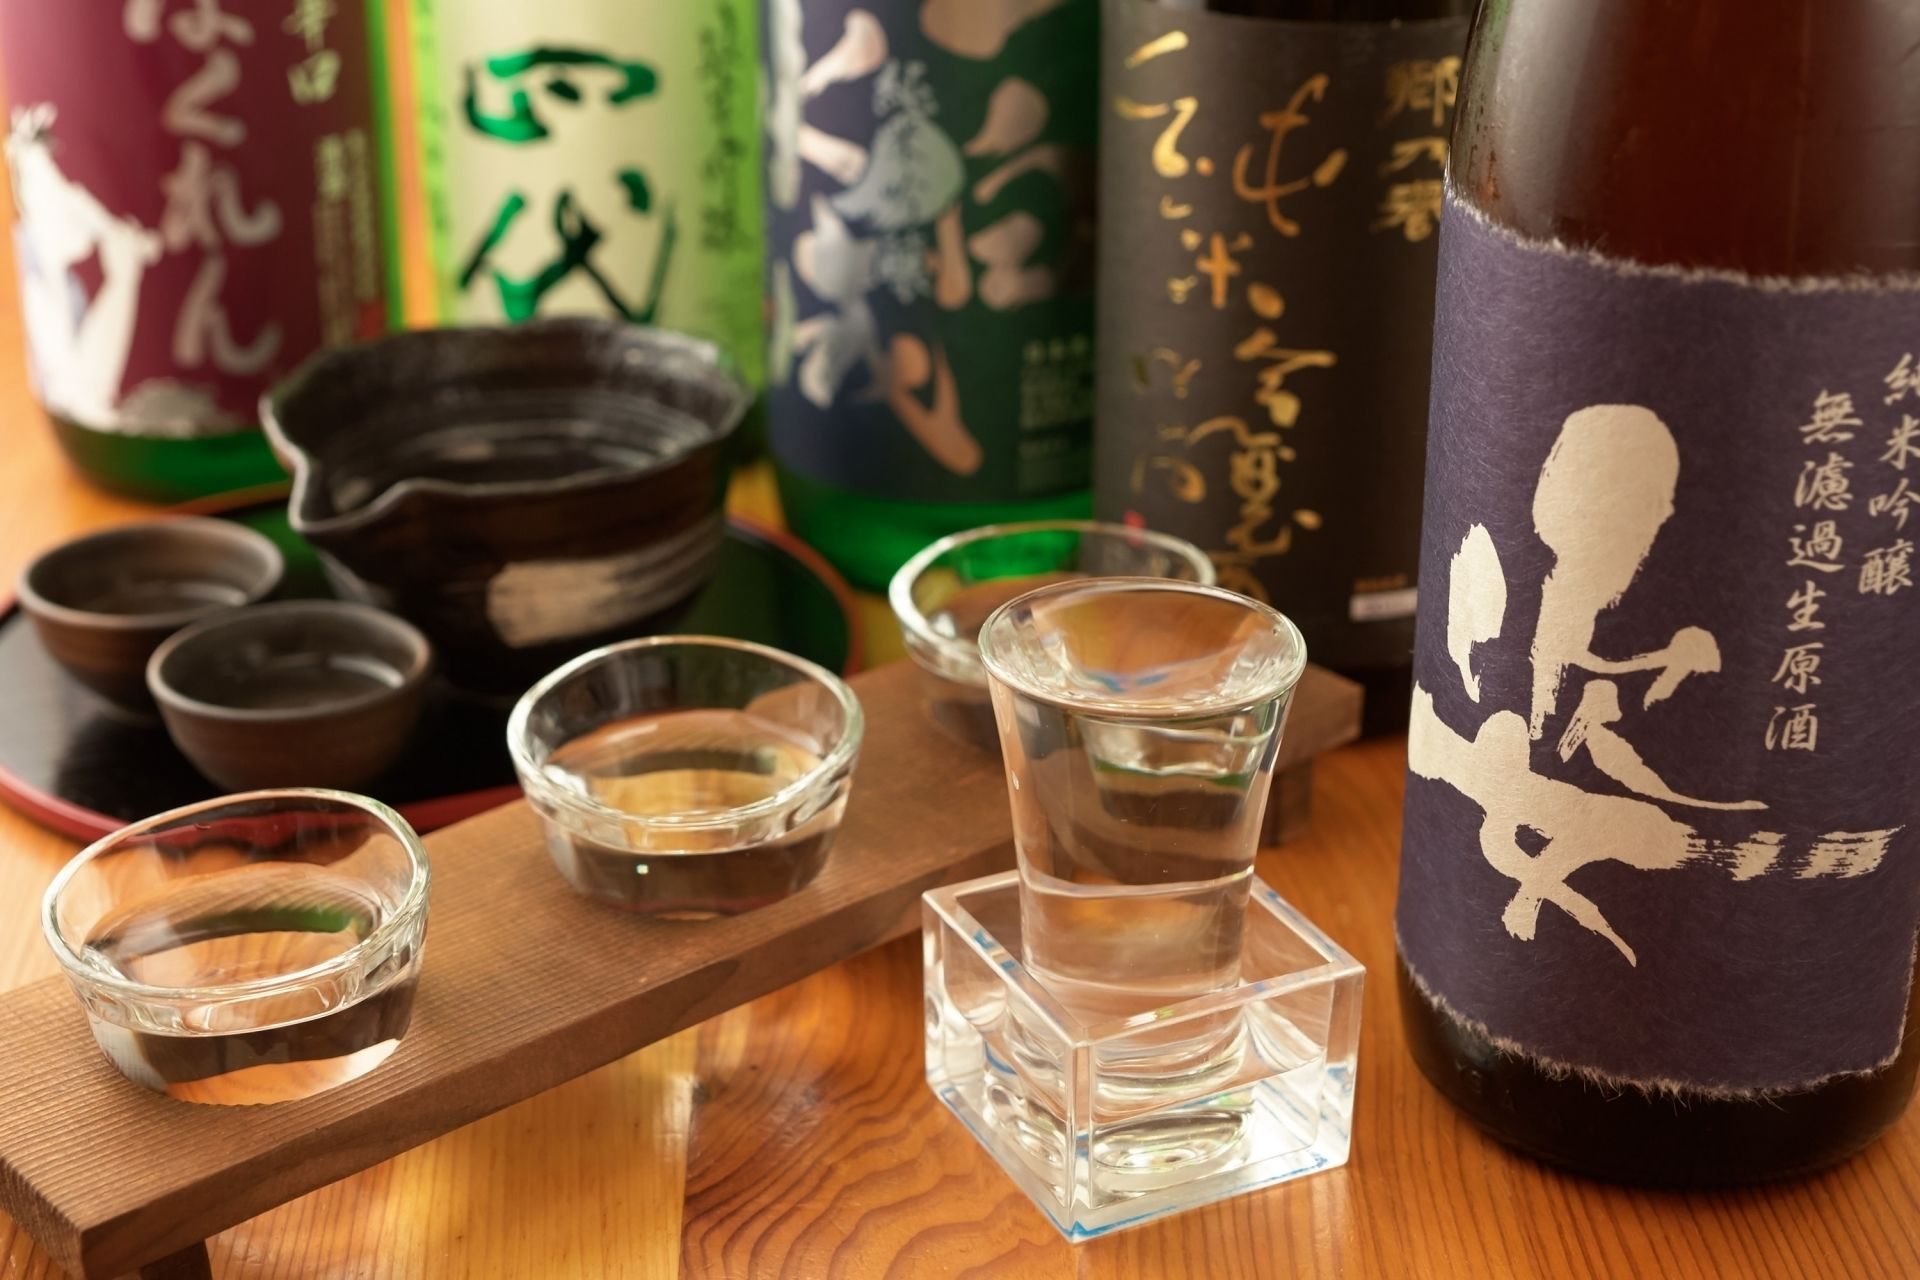 Sake bottles and glasses